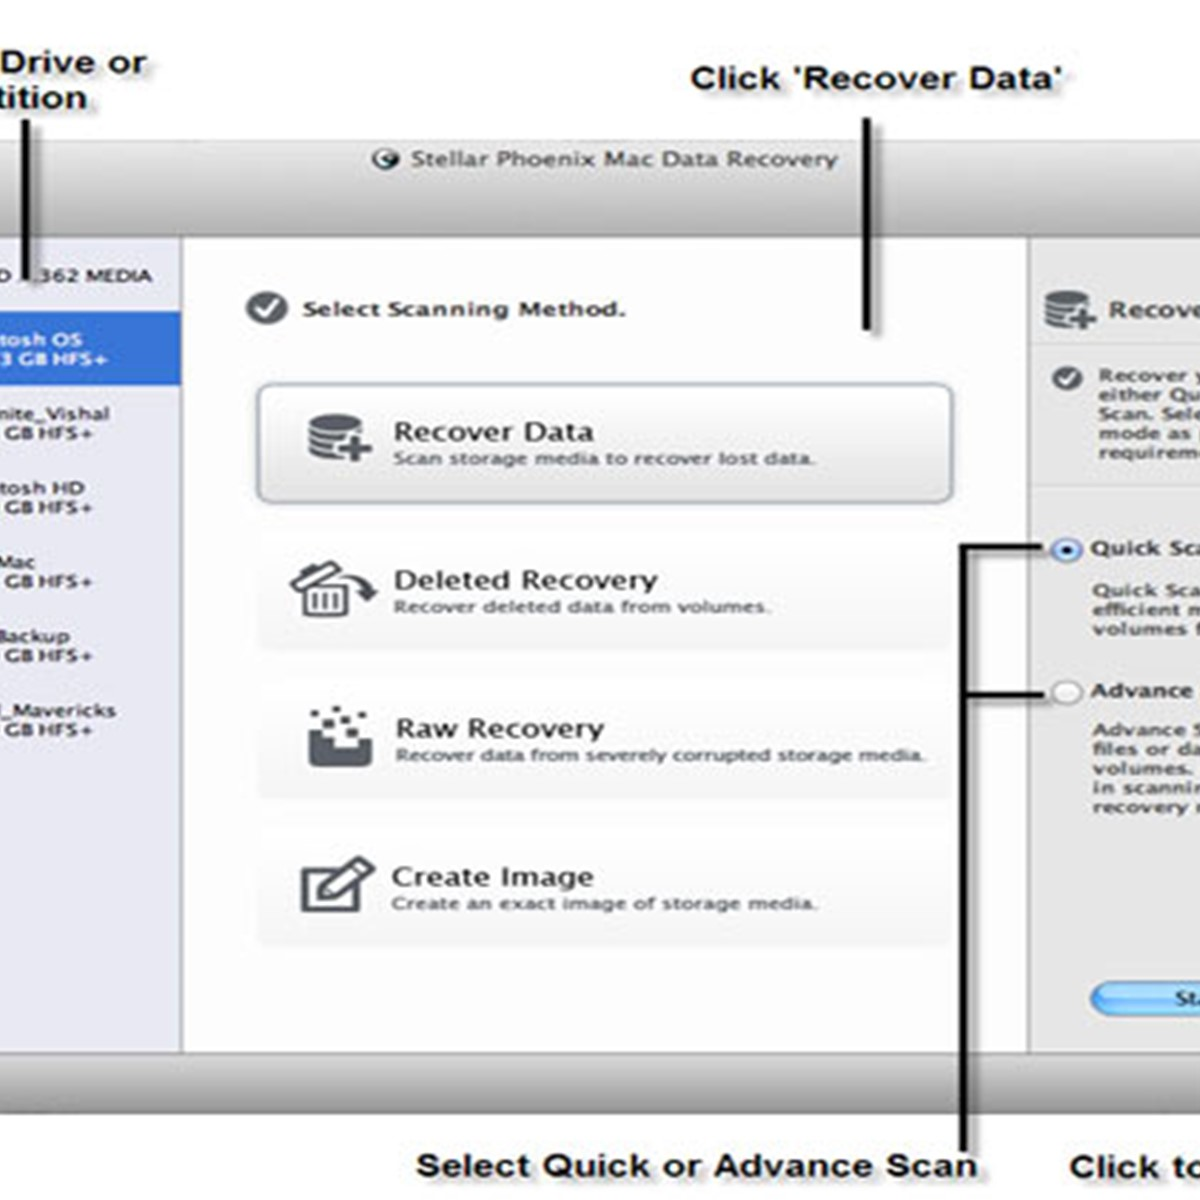 Stellar Phoenix Mac Data Recovery Alternatives and Similar